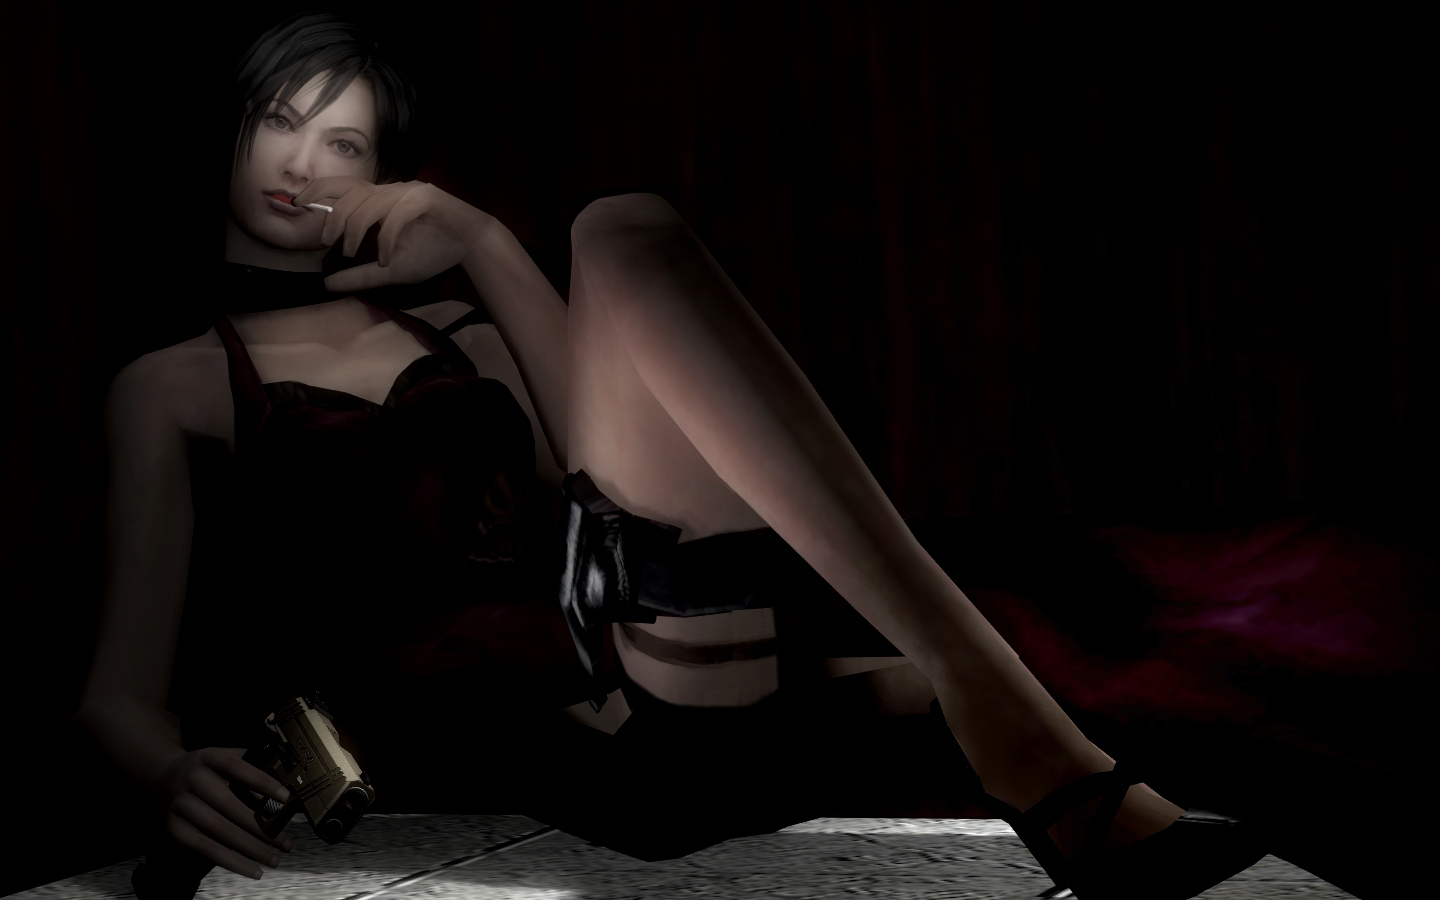 Ada wong sex pic nude image